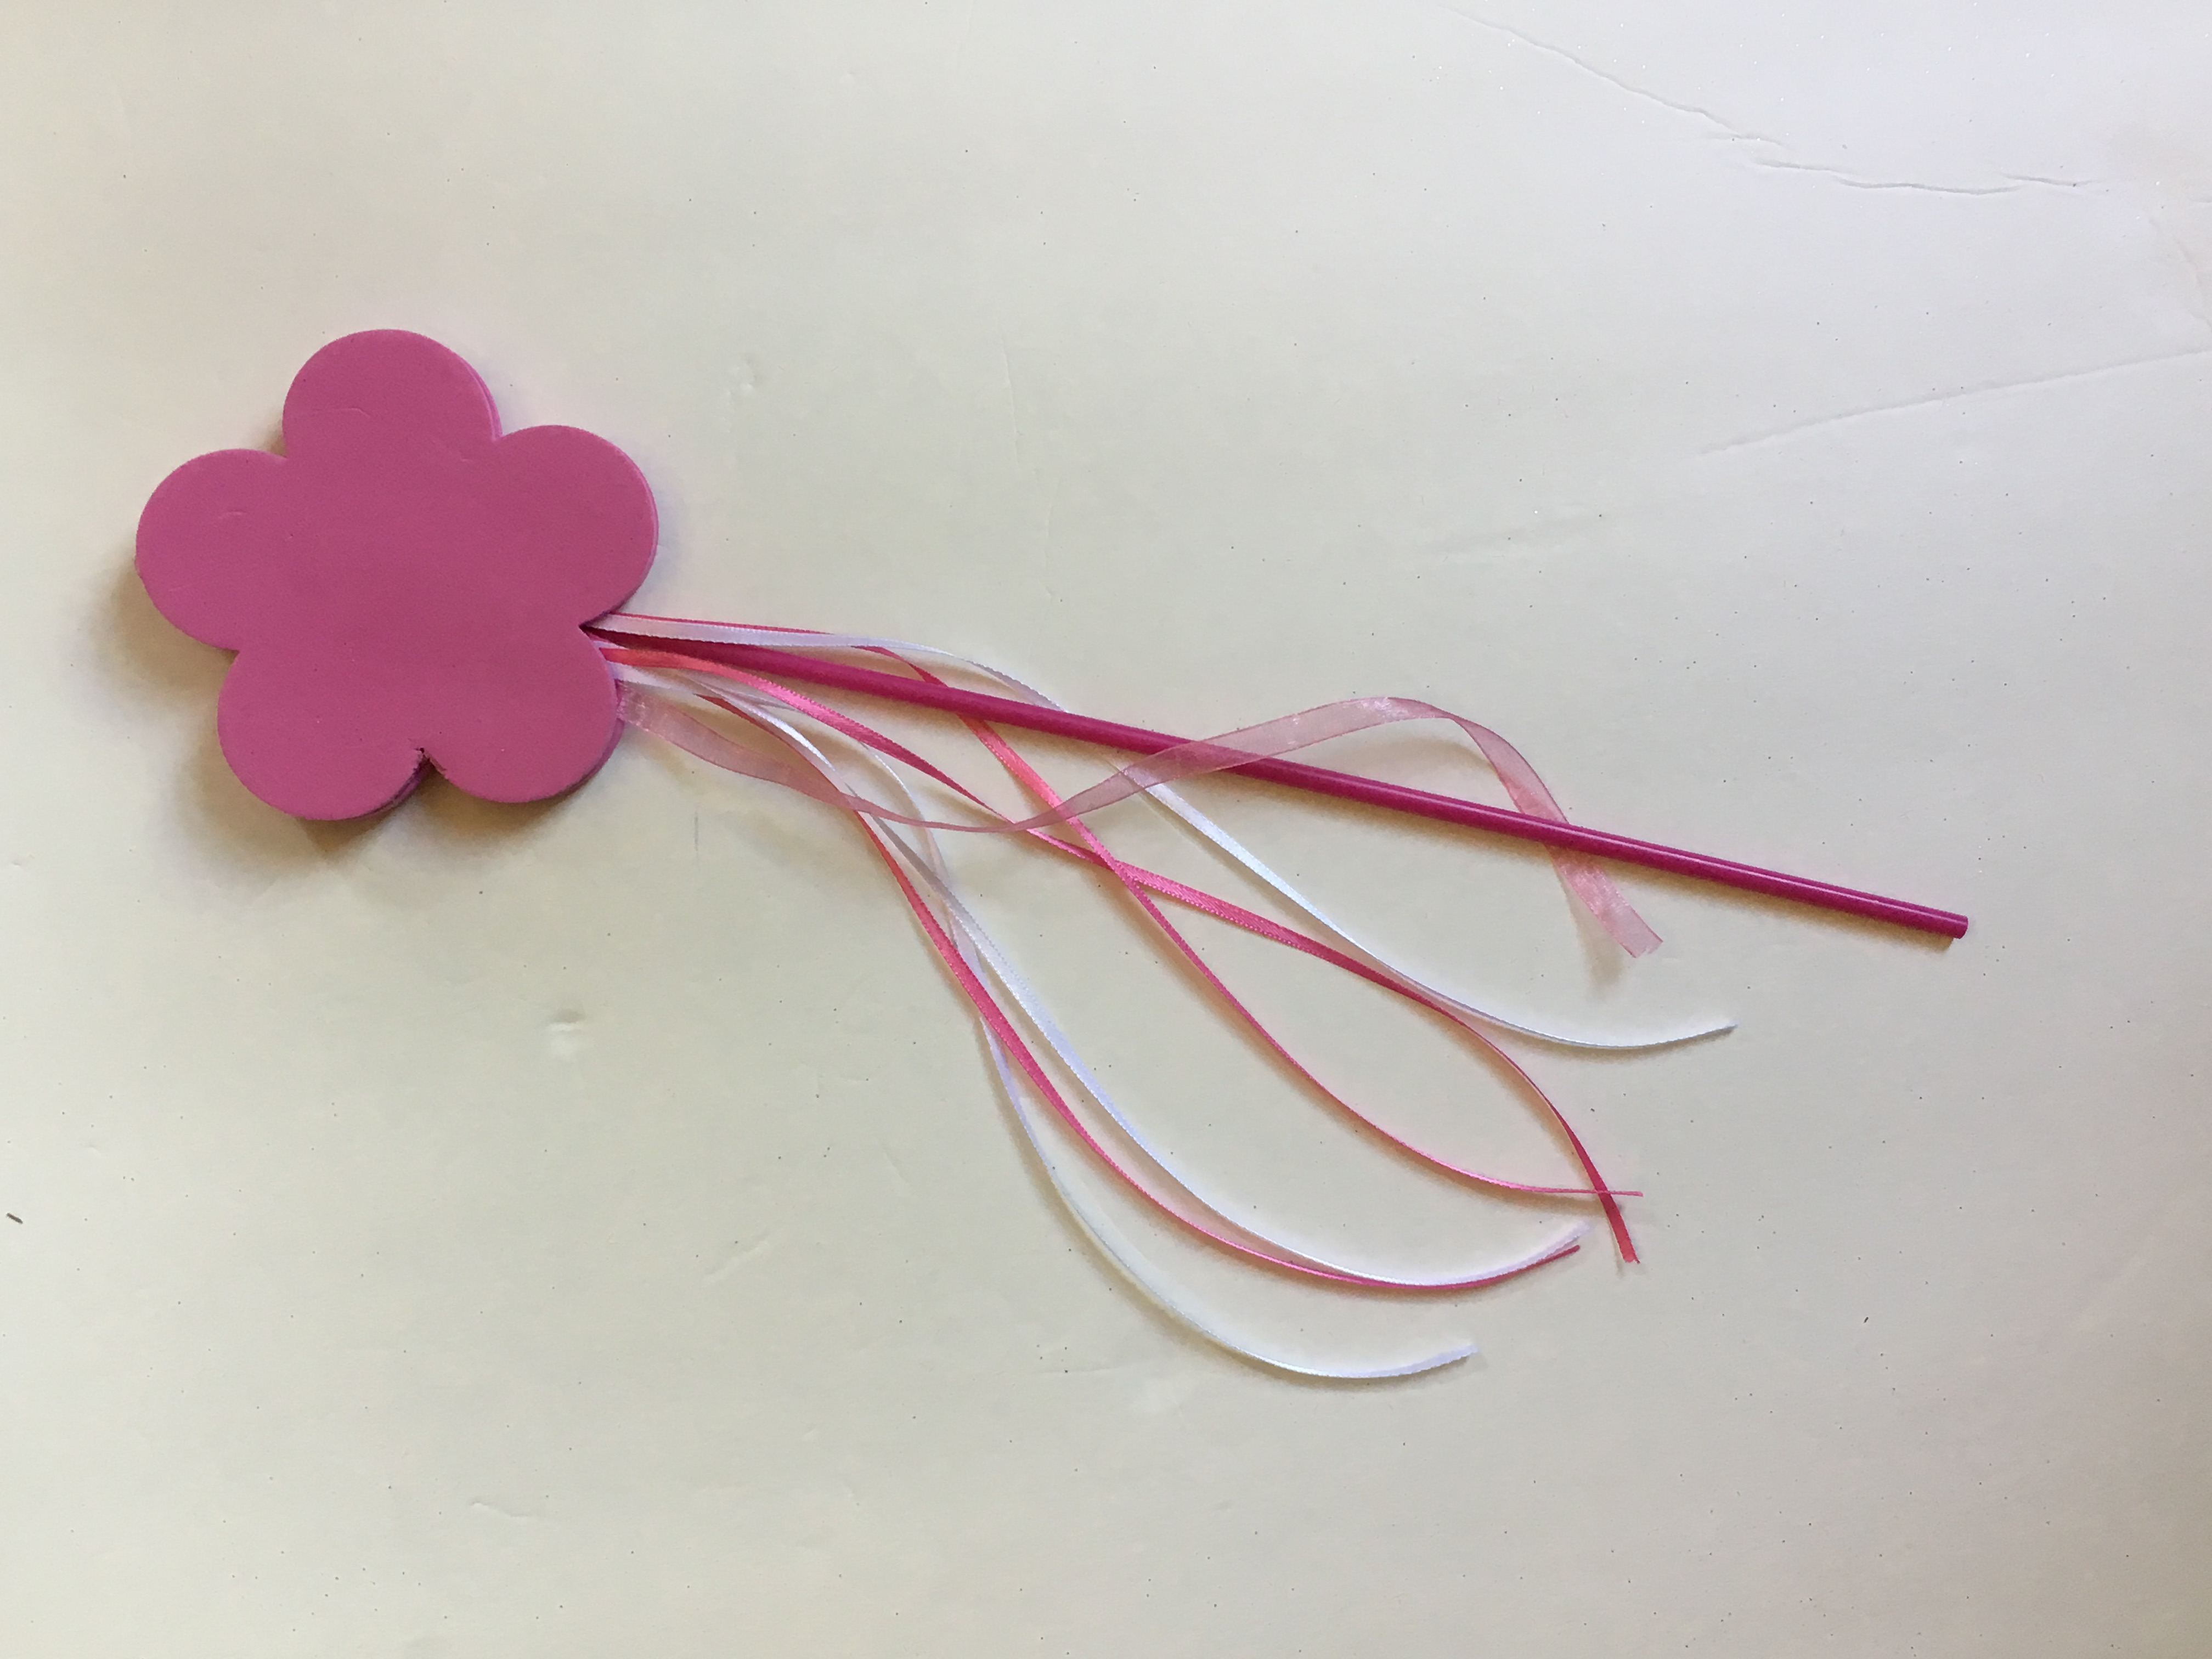 The finished wand is the perfect accessory for the DIY No Sew Tulle Tutu.